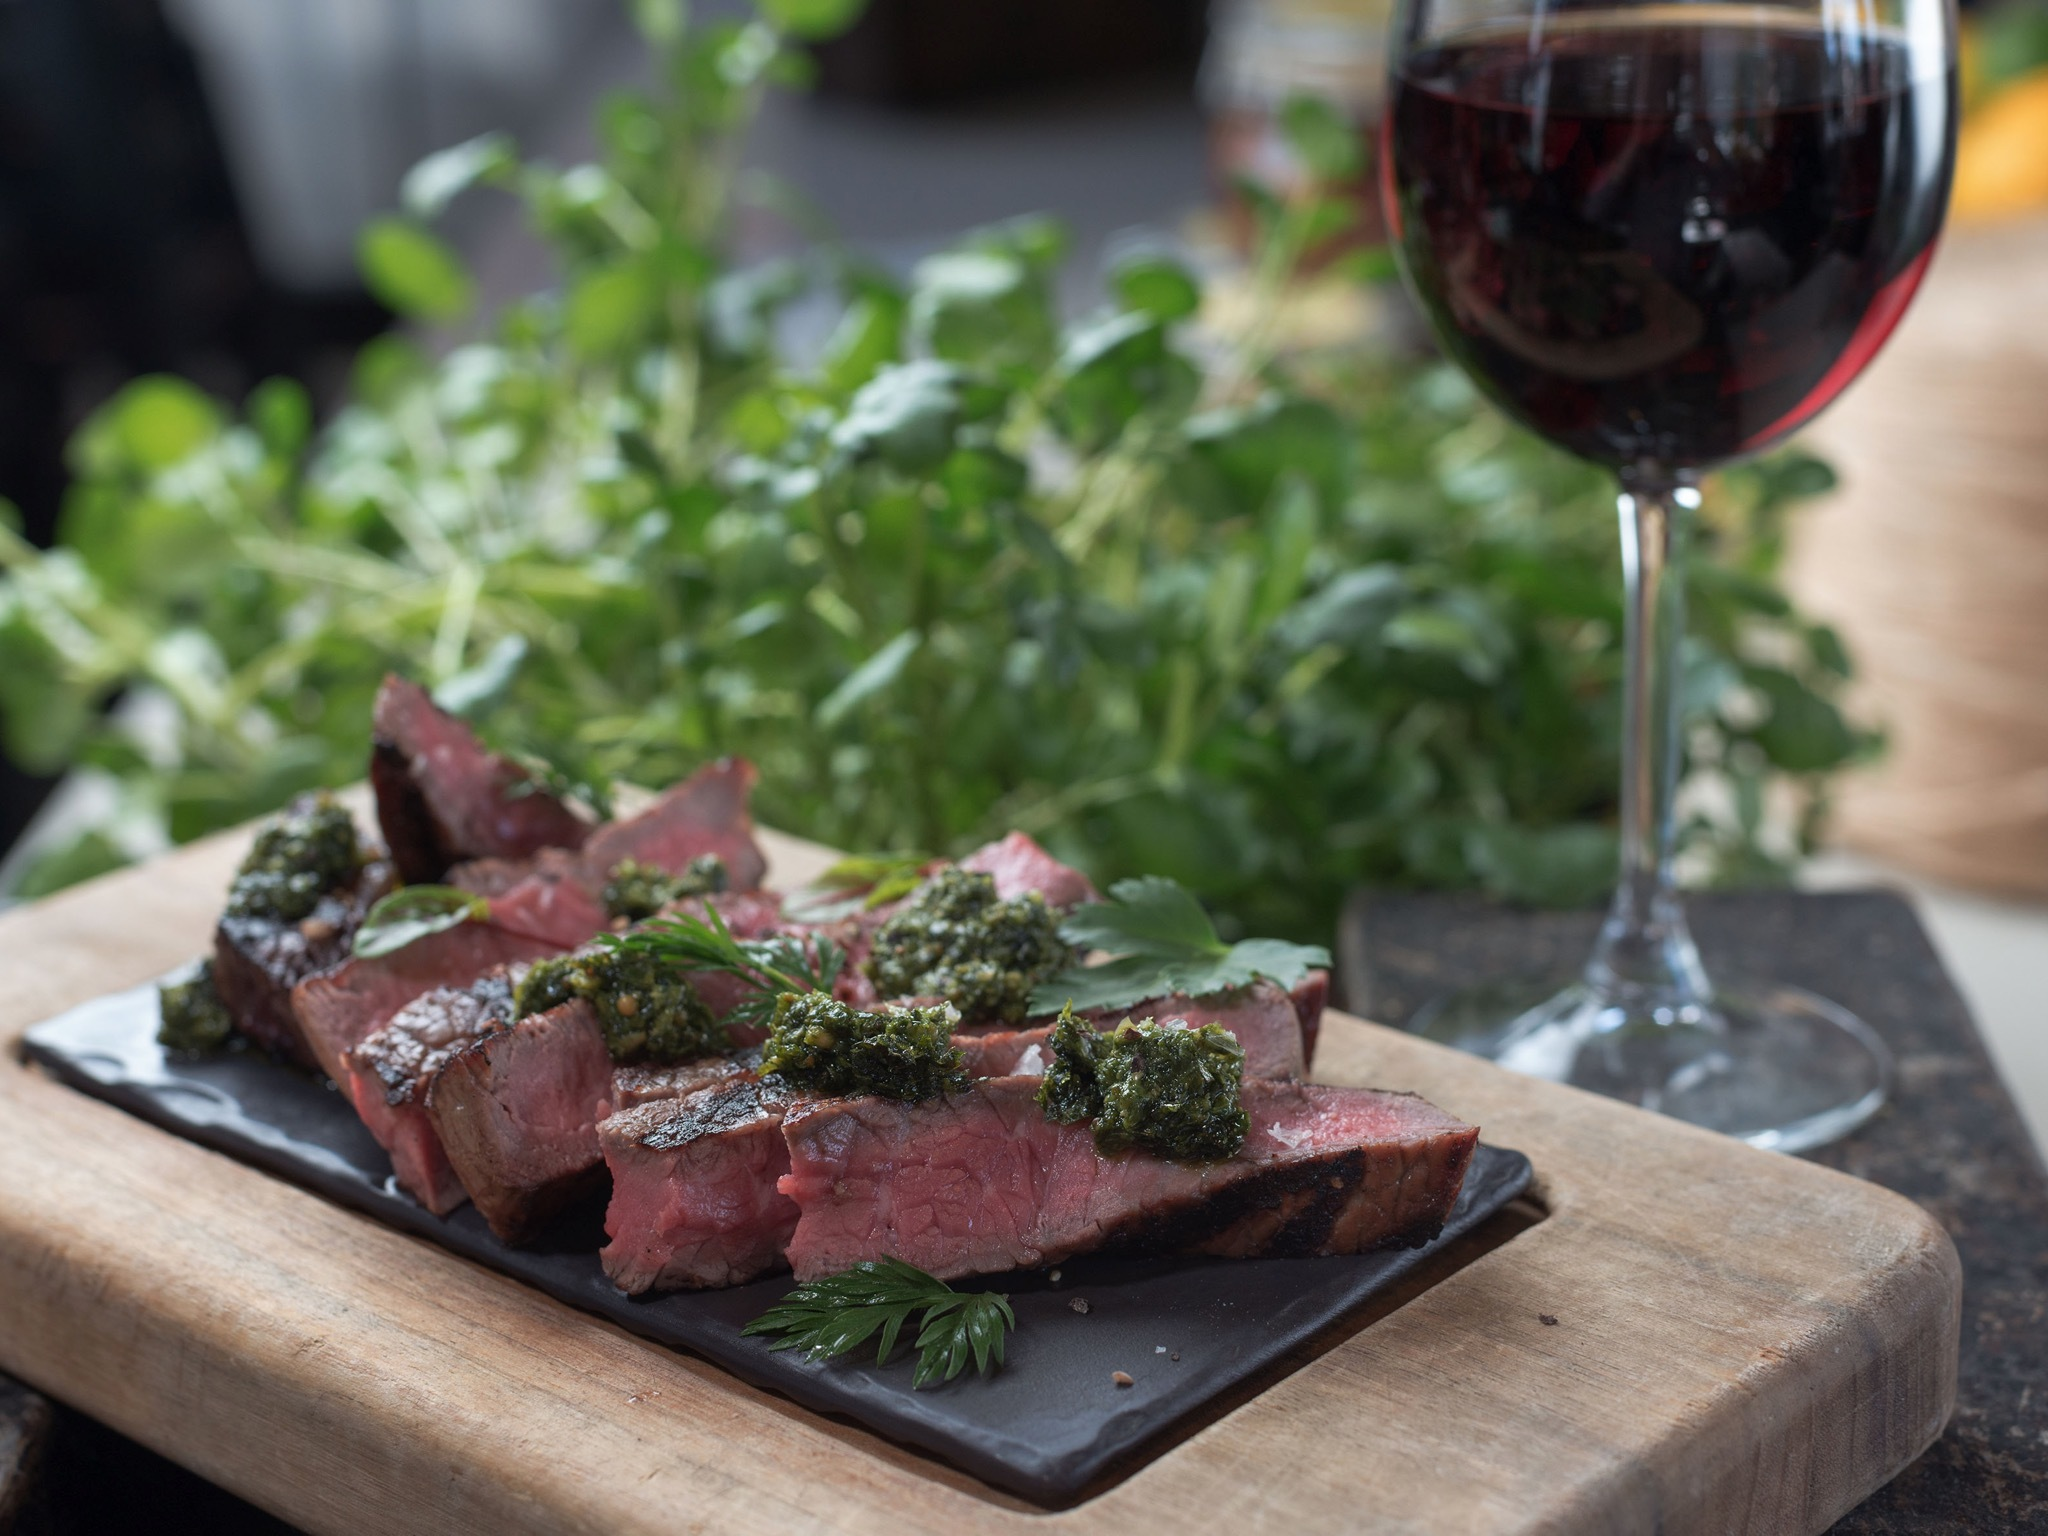 Steak served with pesto and a glass of red wine